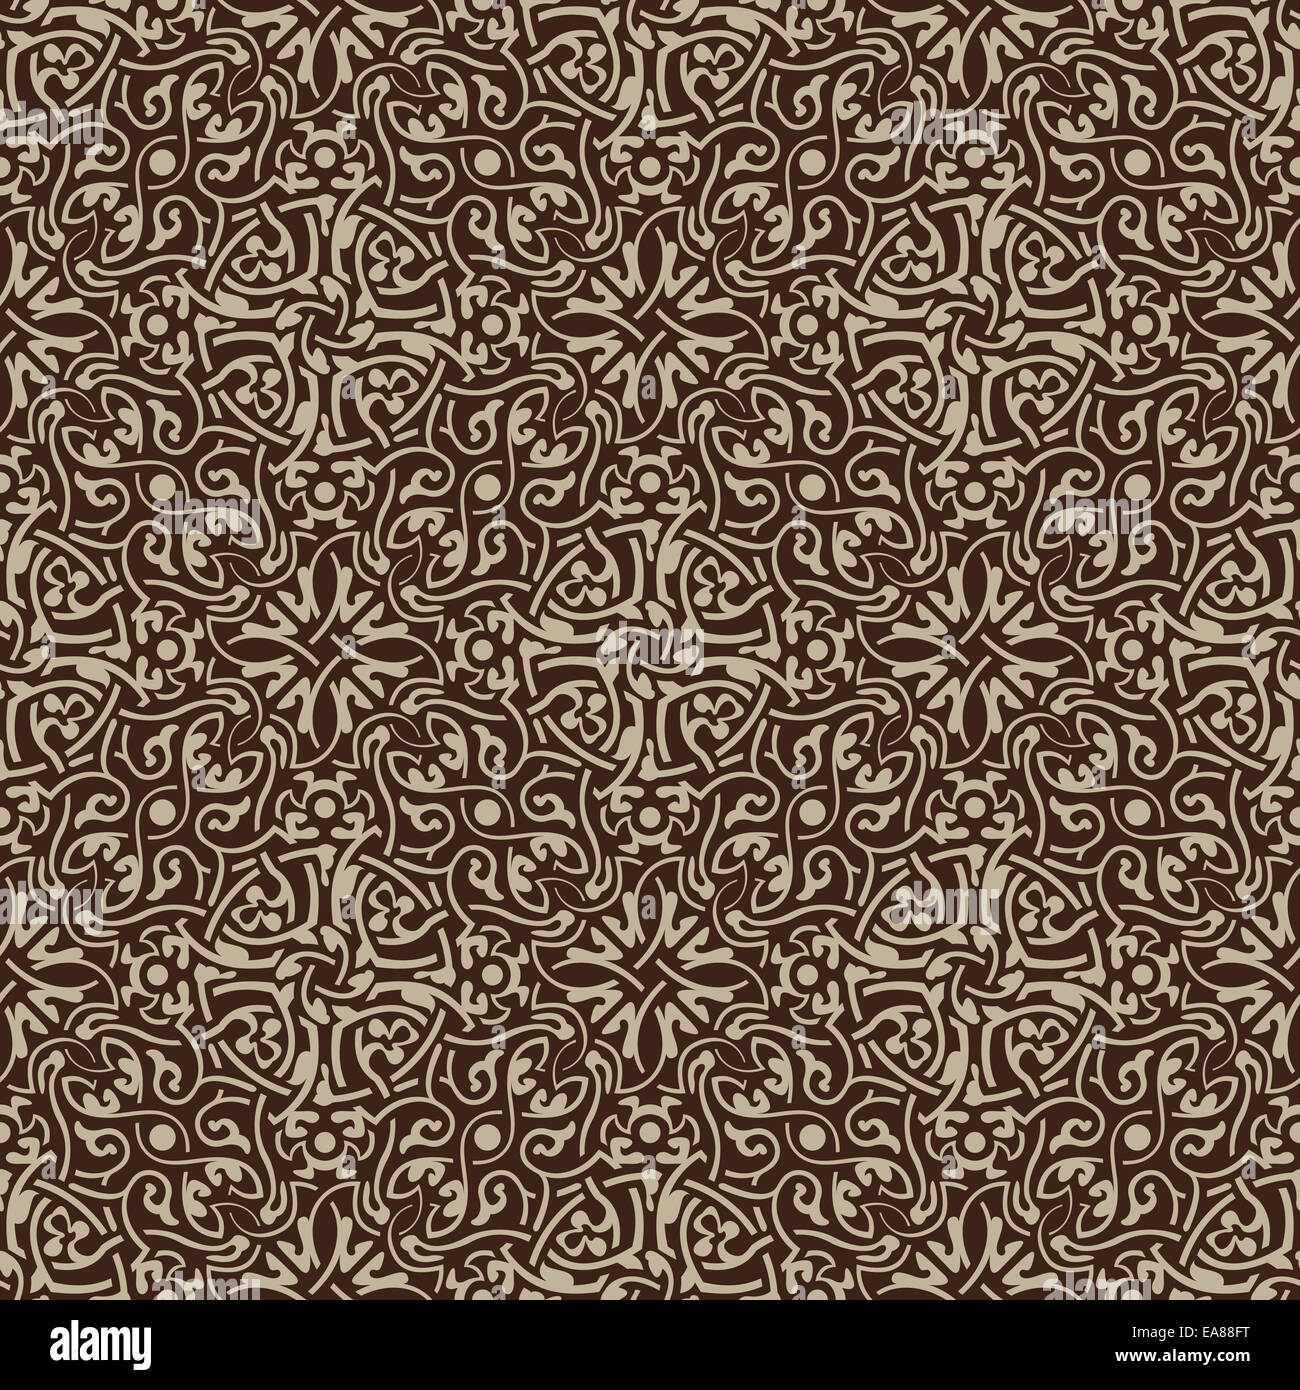 Brown floral seamless wallpaper pattern vector illustration - Stock Image